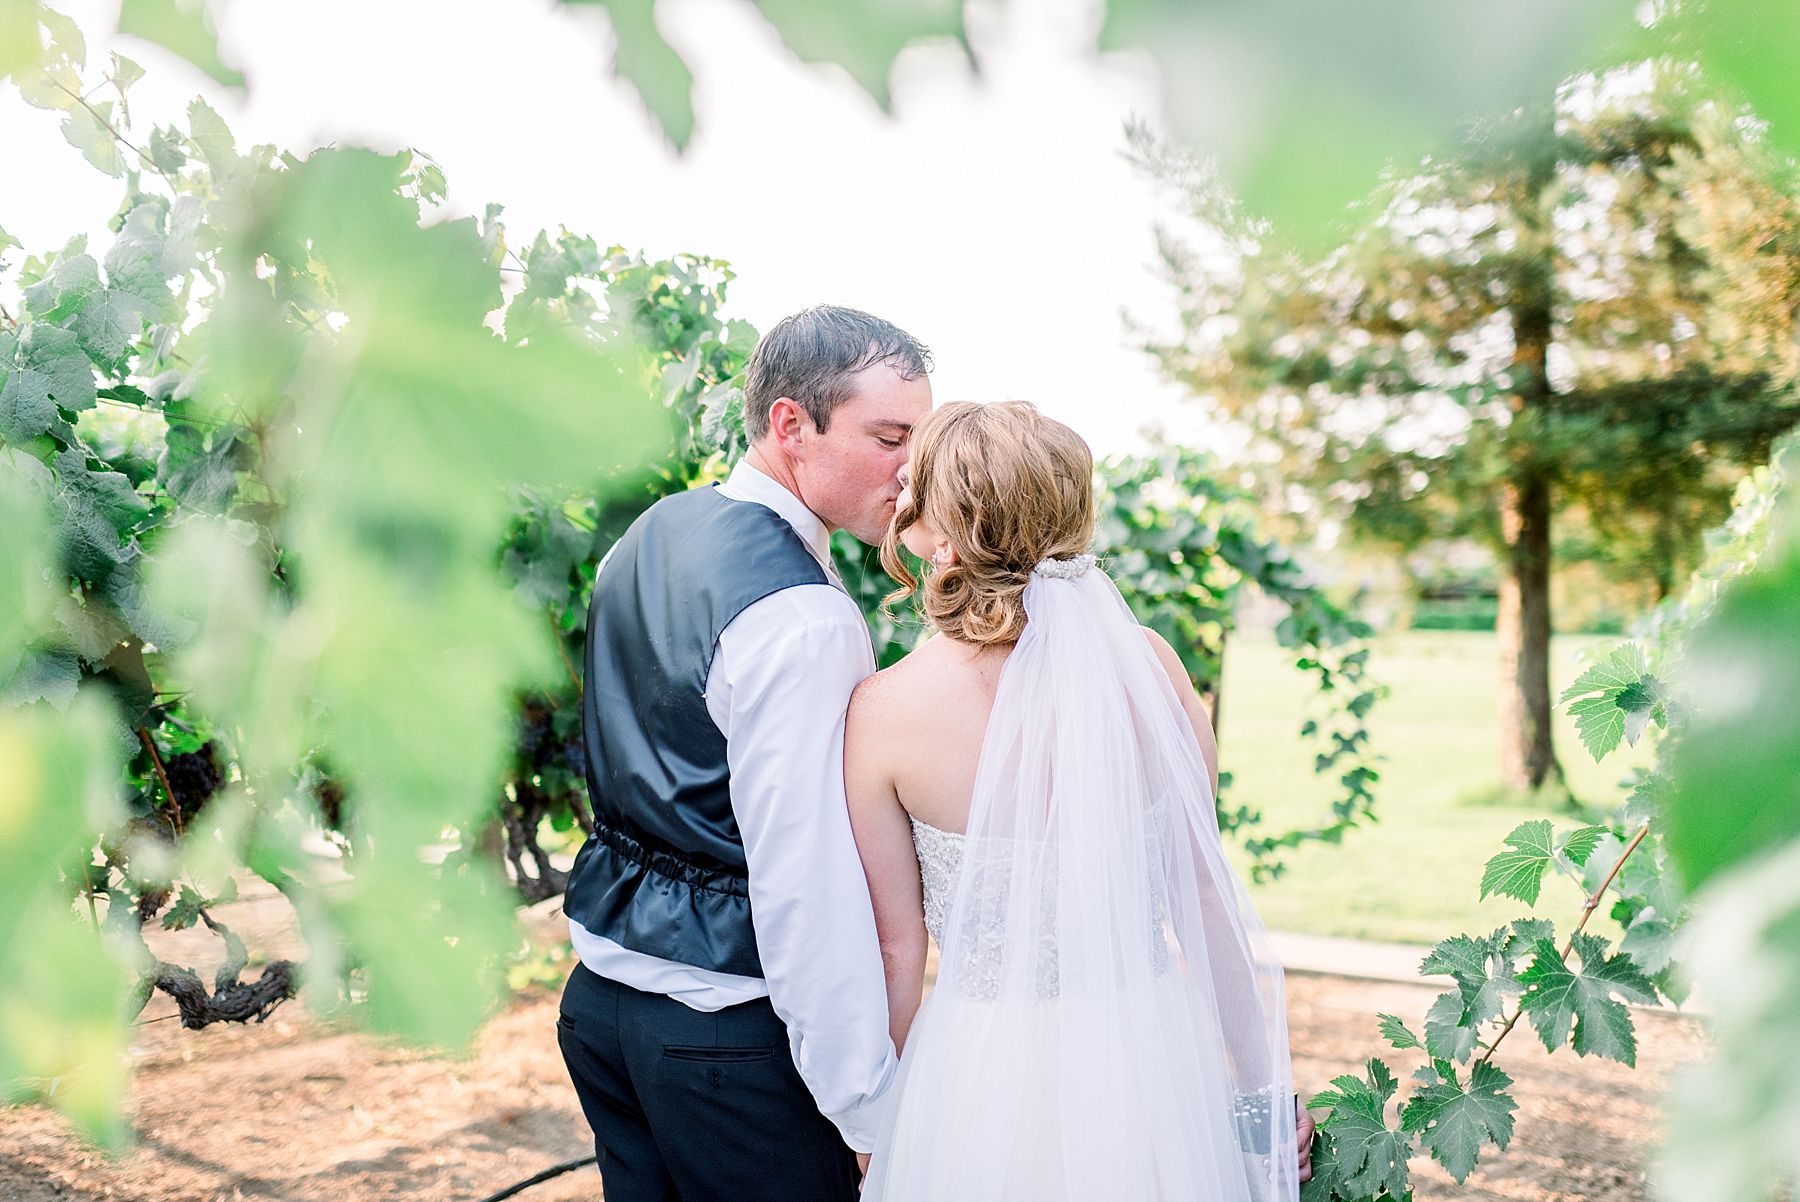 Wine and Roses Wedding - Wine and Roses Lodi Wedding Photographer - Sacramento Film Wedding Photographer - Ashley Baumgartner - Sacramento Luxury Wedding Photographer_0047.jpg